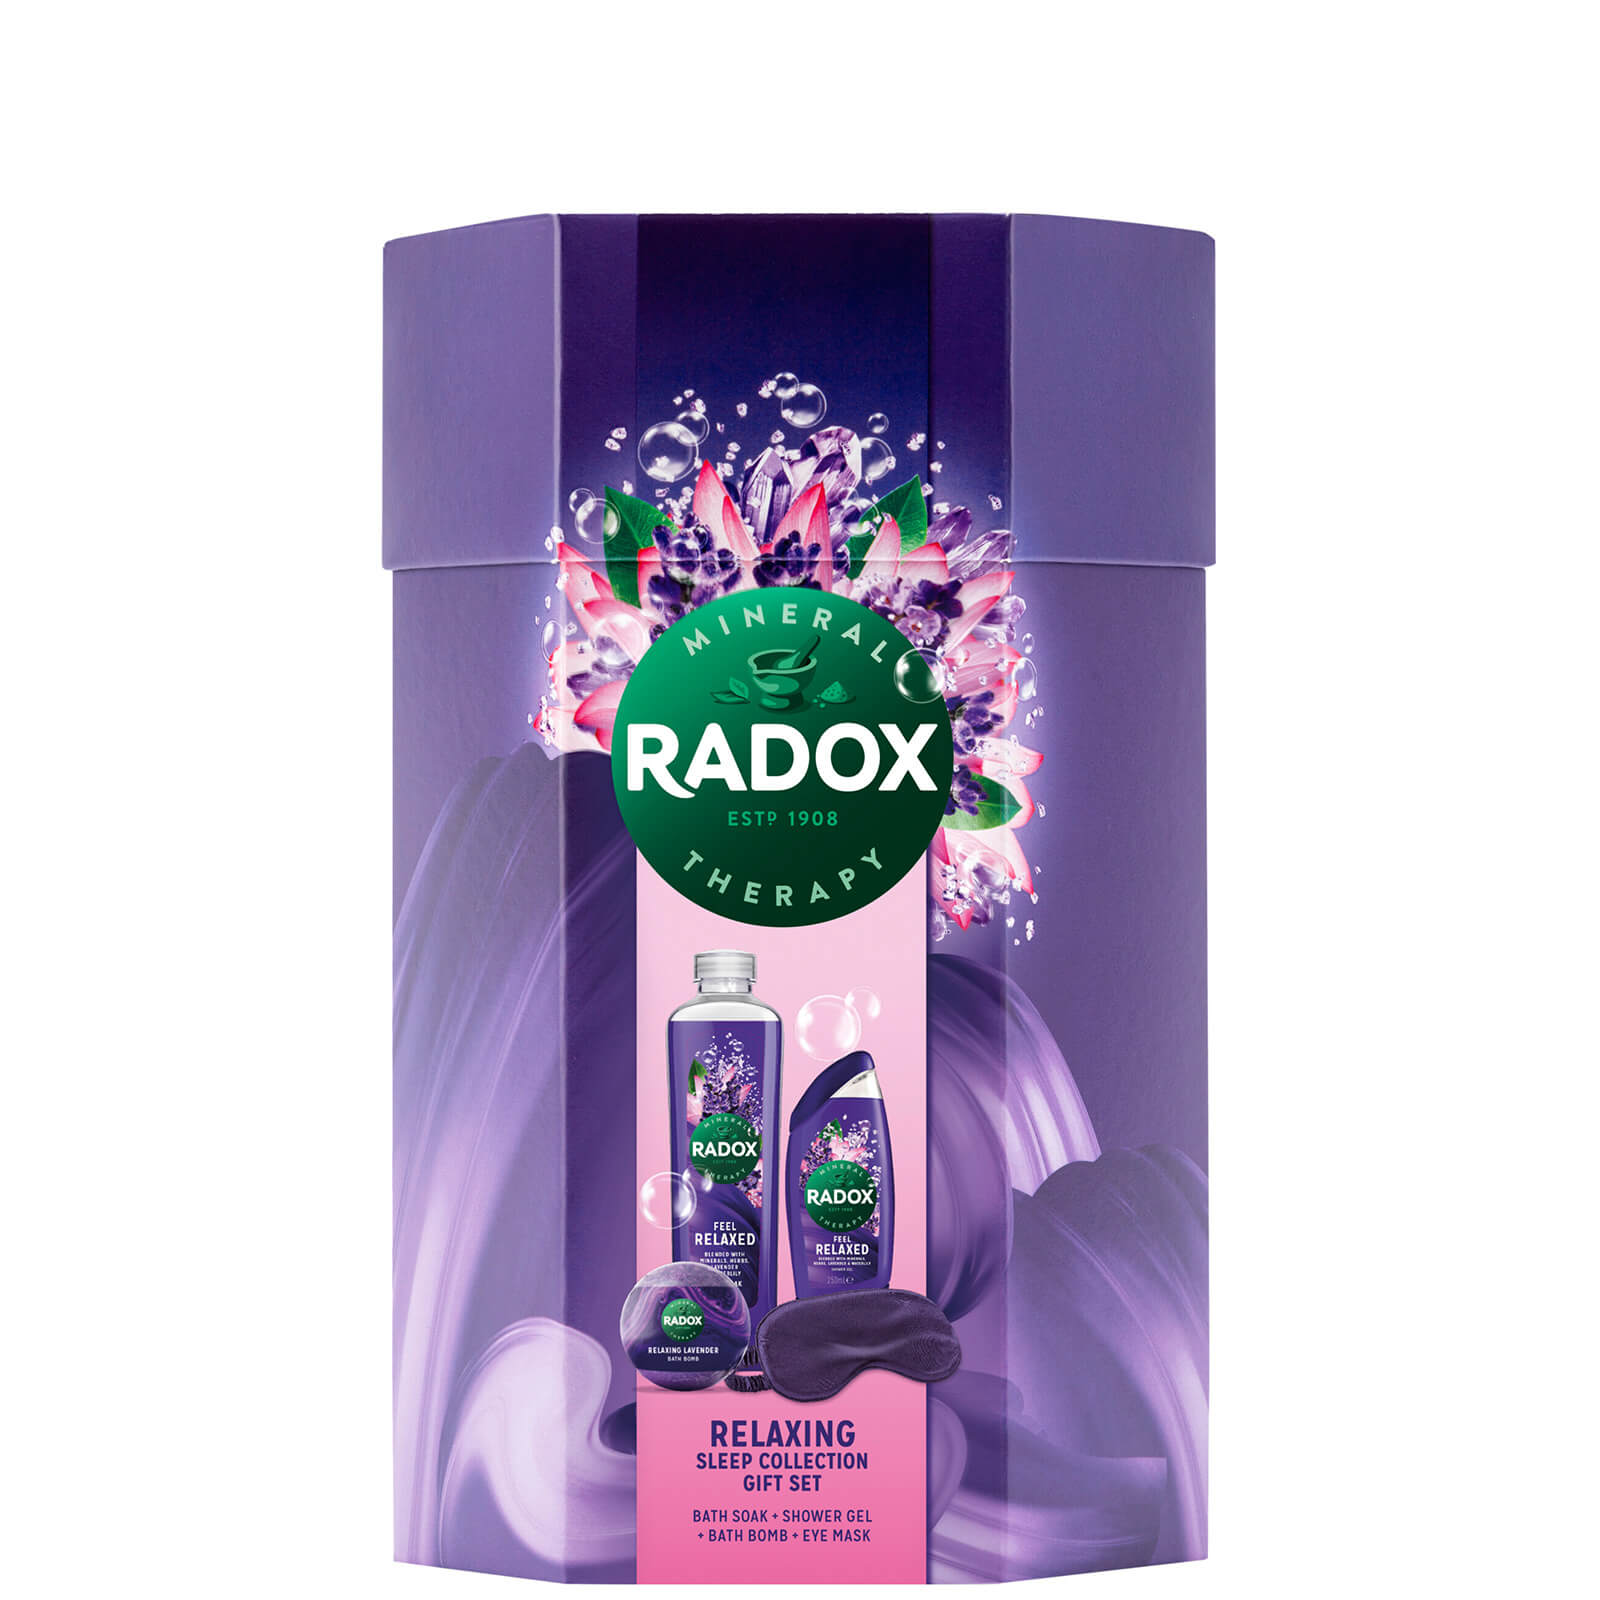 Radox Relaxing Sleep Collection Gift Set